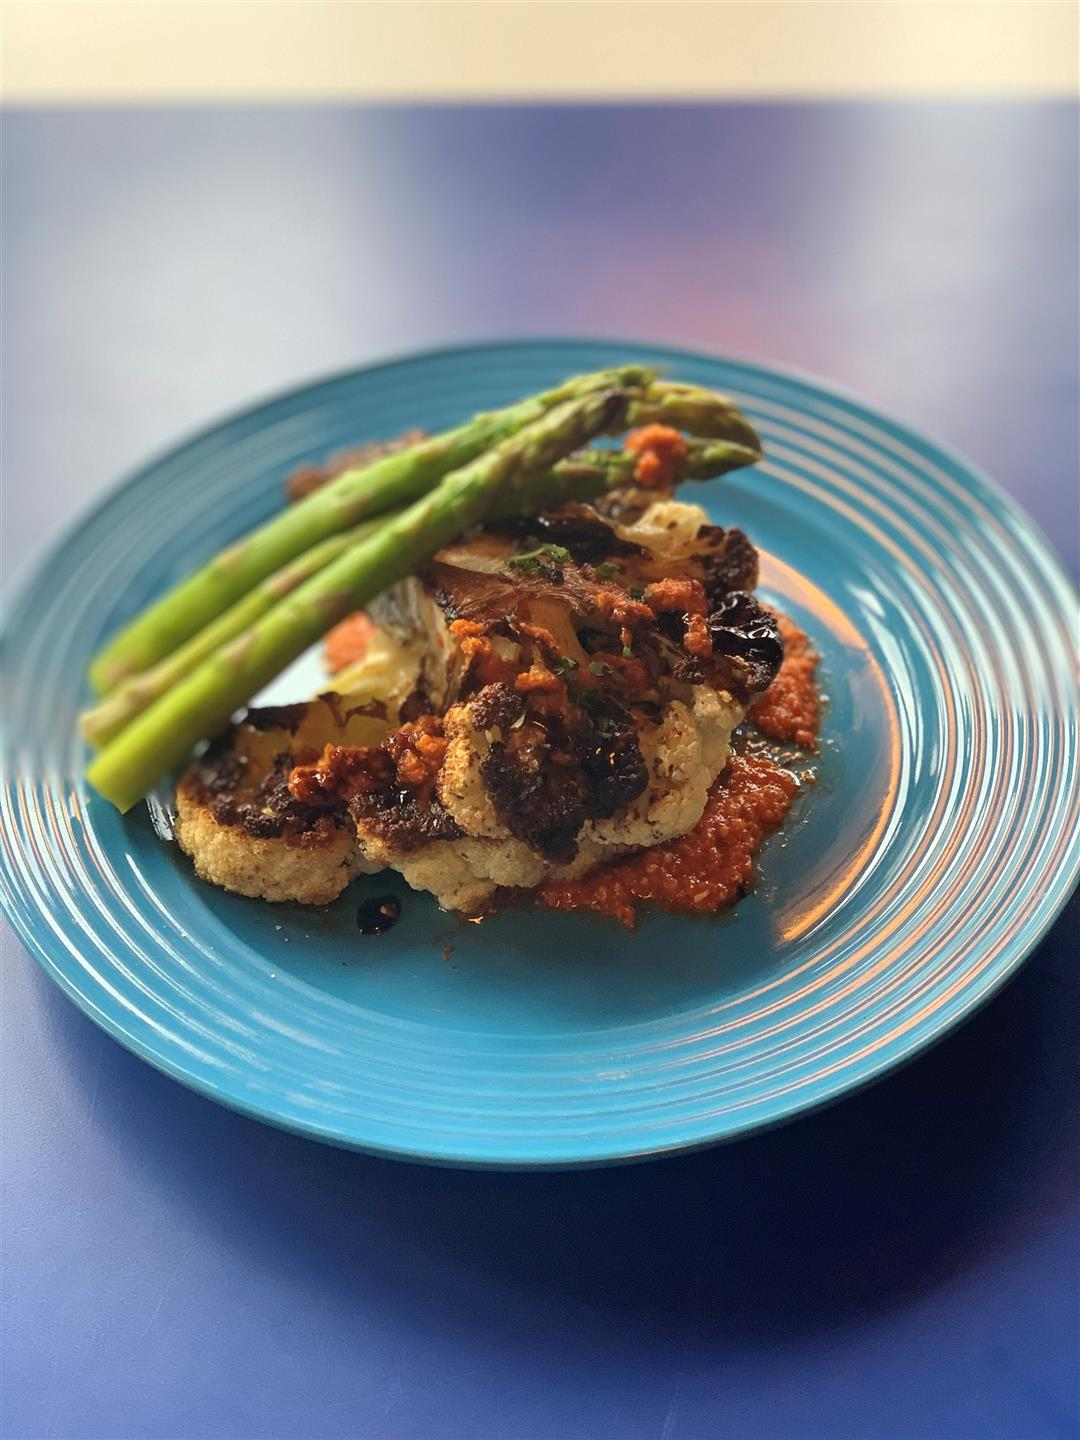 vegan cauliflower 'steak' served with asparagus